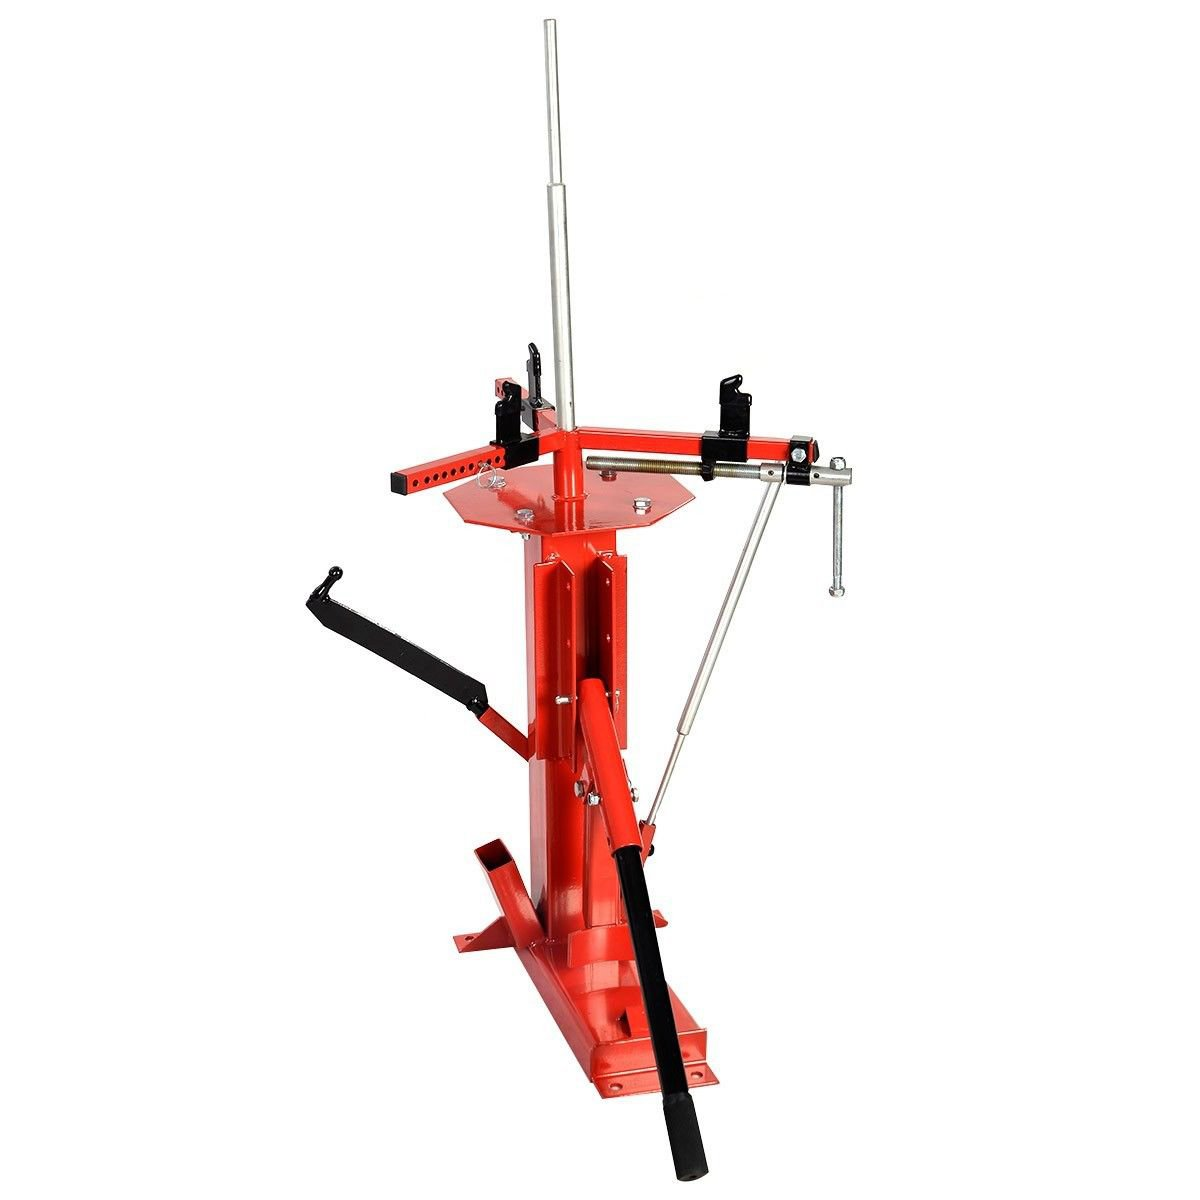 Toolsempire Multi Manual Tire Spreader Portable Tire Changer for Motorcycle Gocart Trailer Bike ATV Truck